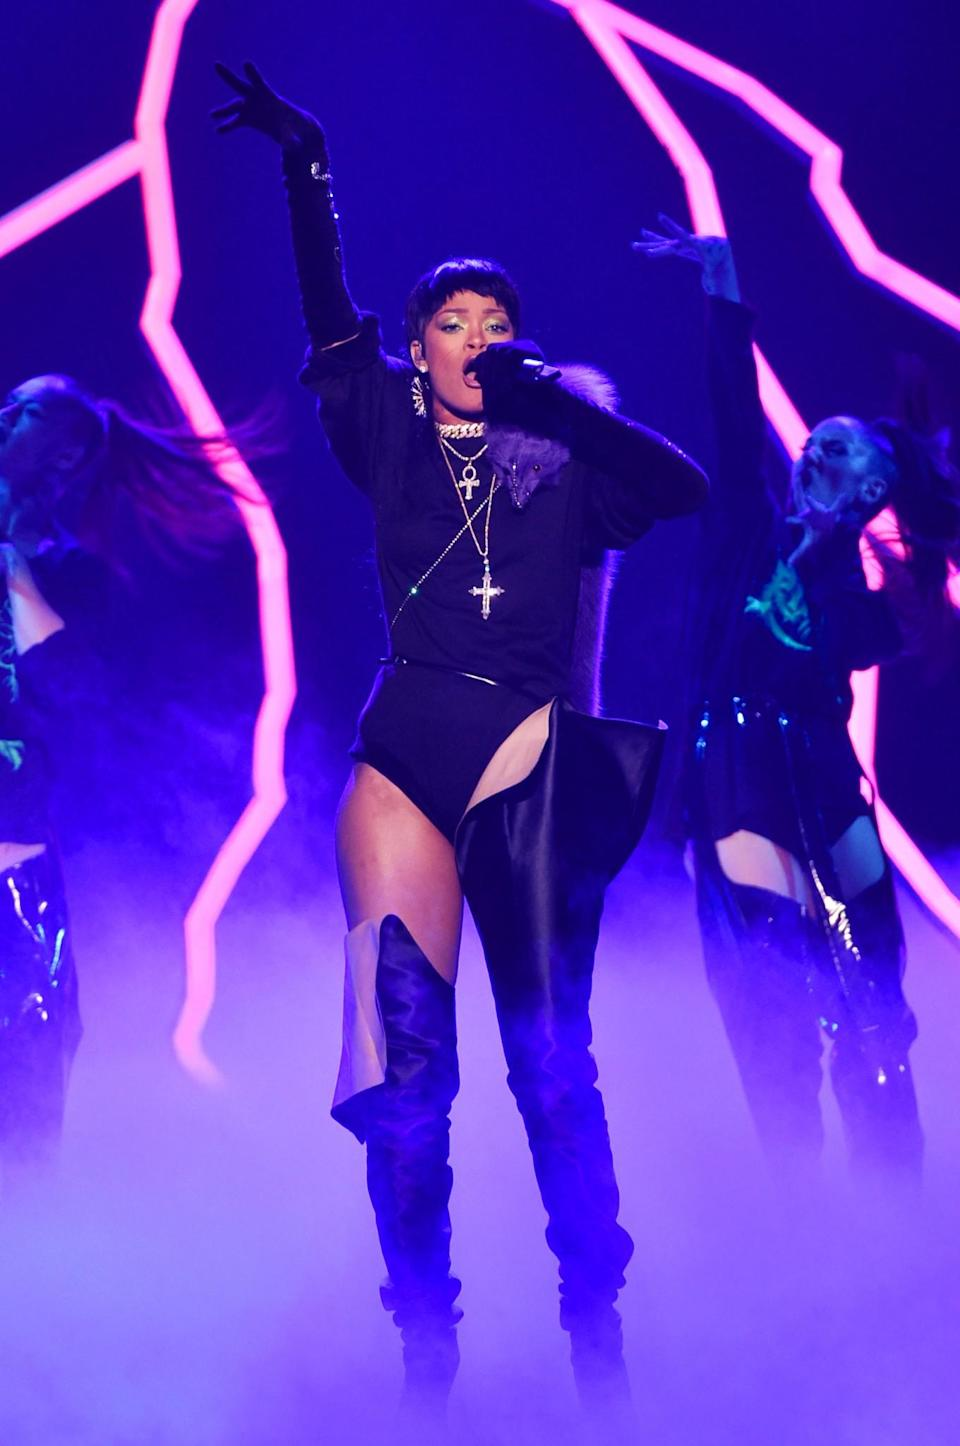 """<p>The song has sold 1,758,000 copies since its release in January. This is the year's top hit by a female lead artist. This is Rihanna's first appearance in a year-end top 10 since 2013, when """"Stay"""" (featuring Mikky Ekko) was the year's No. 10 hit. """"Work"""" was nominated for a Grammy for Record of the Year. (Photo by Getty Images) </p>"""